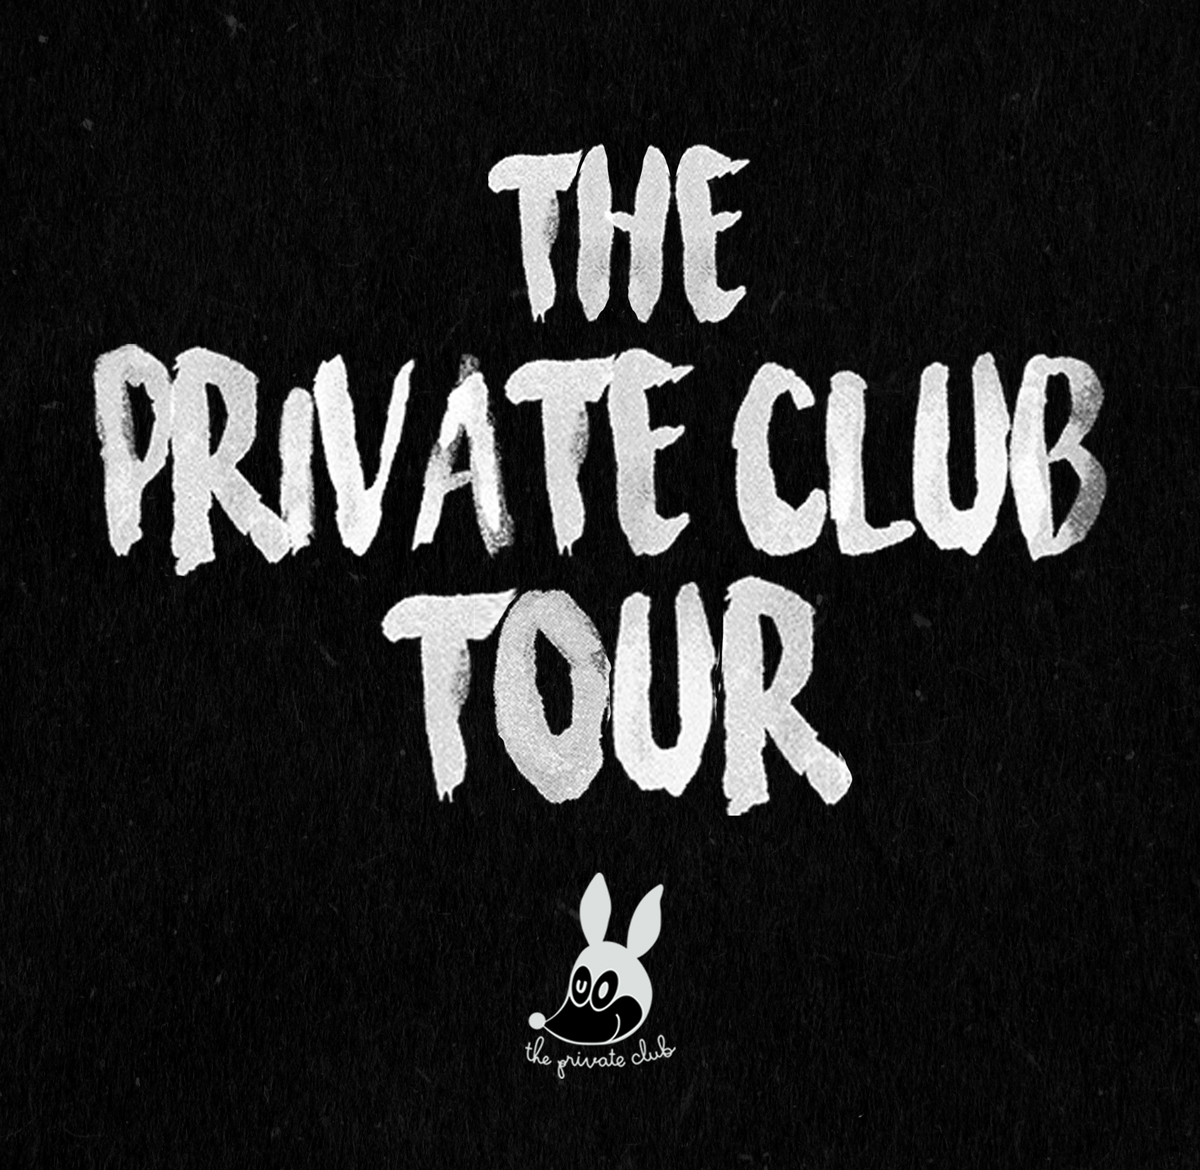 THE PRIVATE CLUB TOUR: MADEINTYO, SALMA SLIMS, MYNAMEPHIN, NOAH WOOD$ PLUS SPECIAL GUESTS